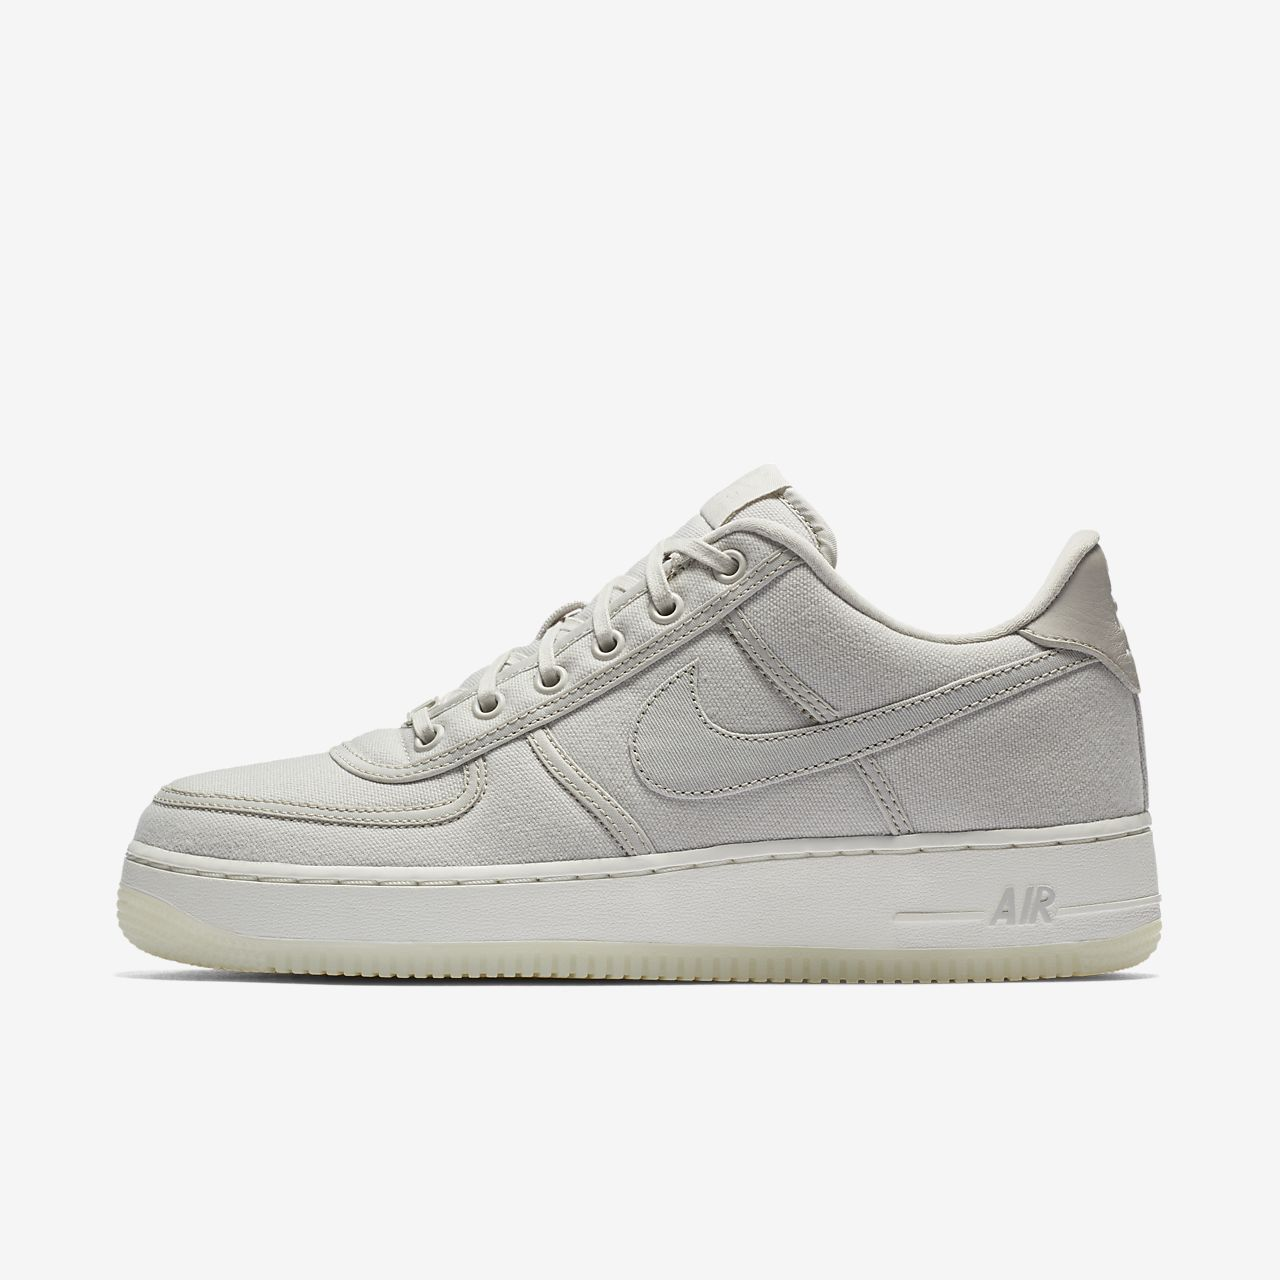 buy online a1a2e f206a ... Nike Air Force 1 Low Retro QS Men s Shoe